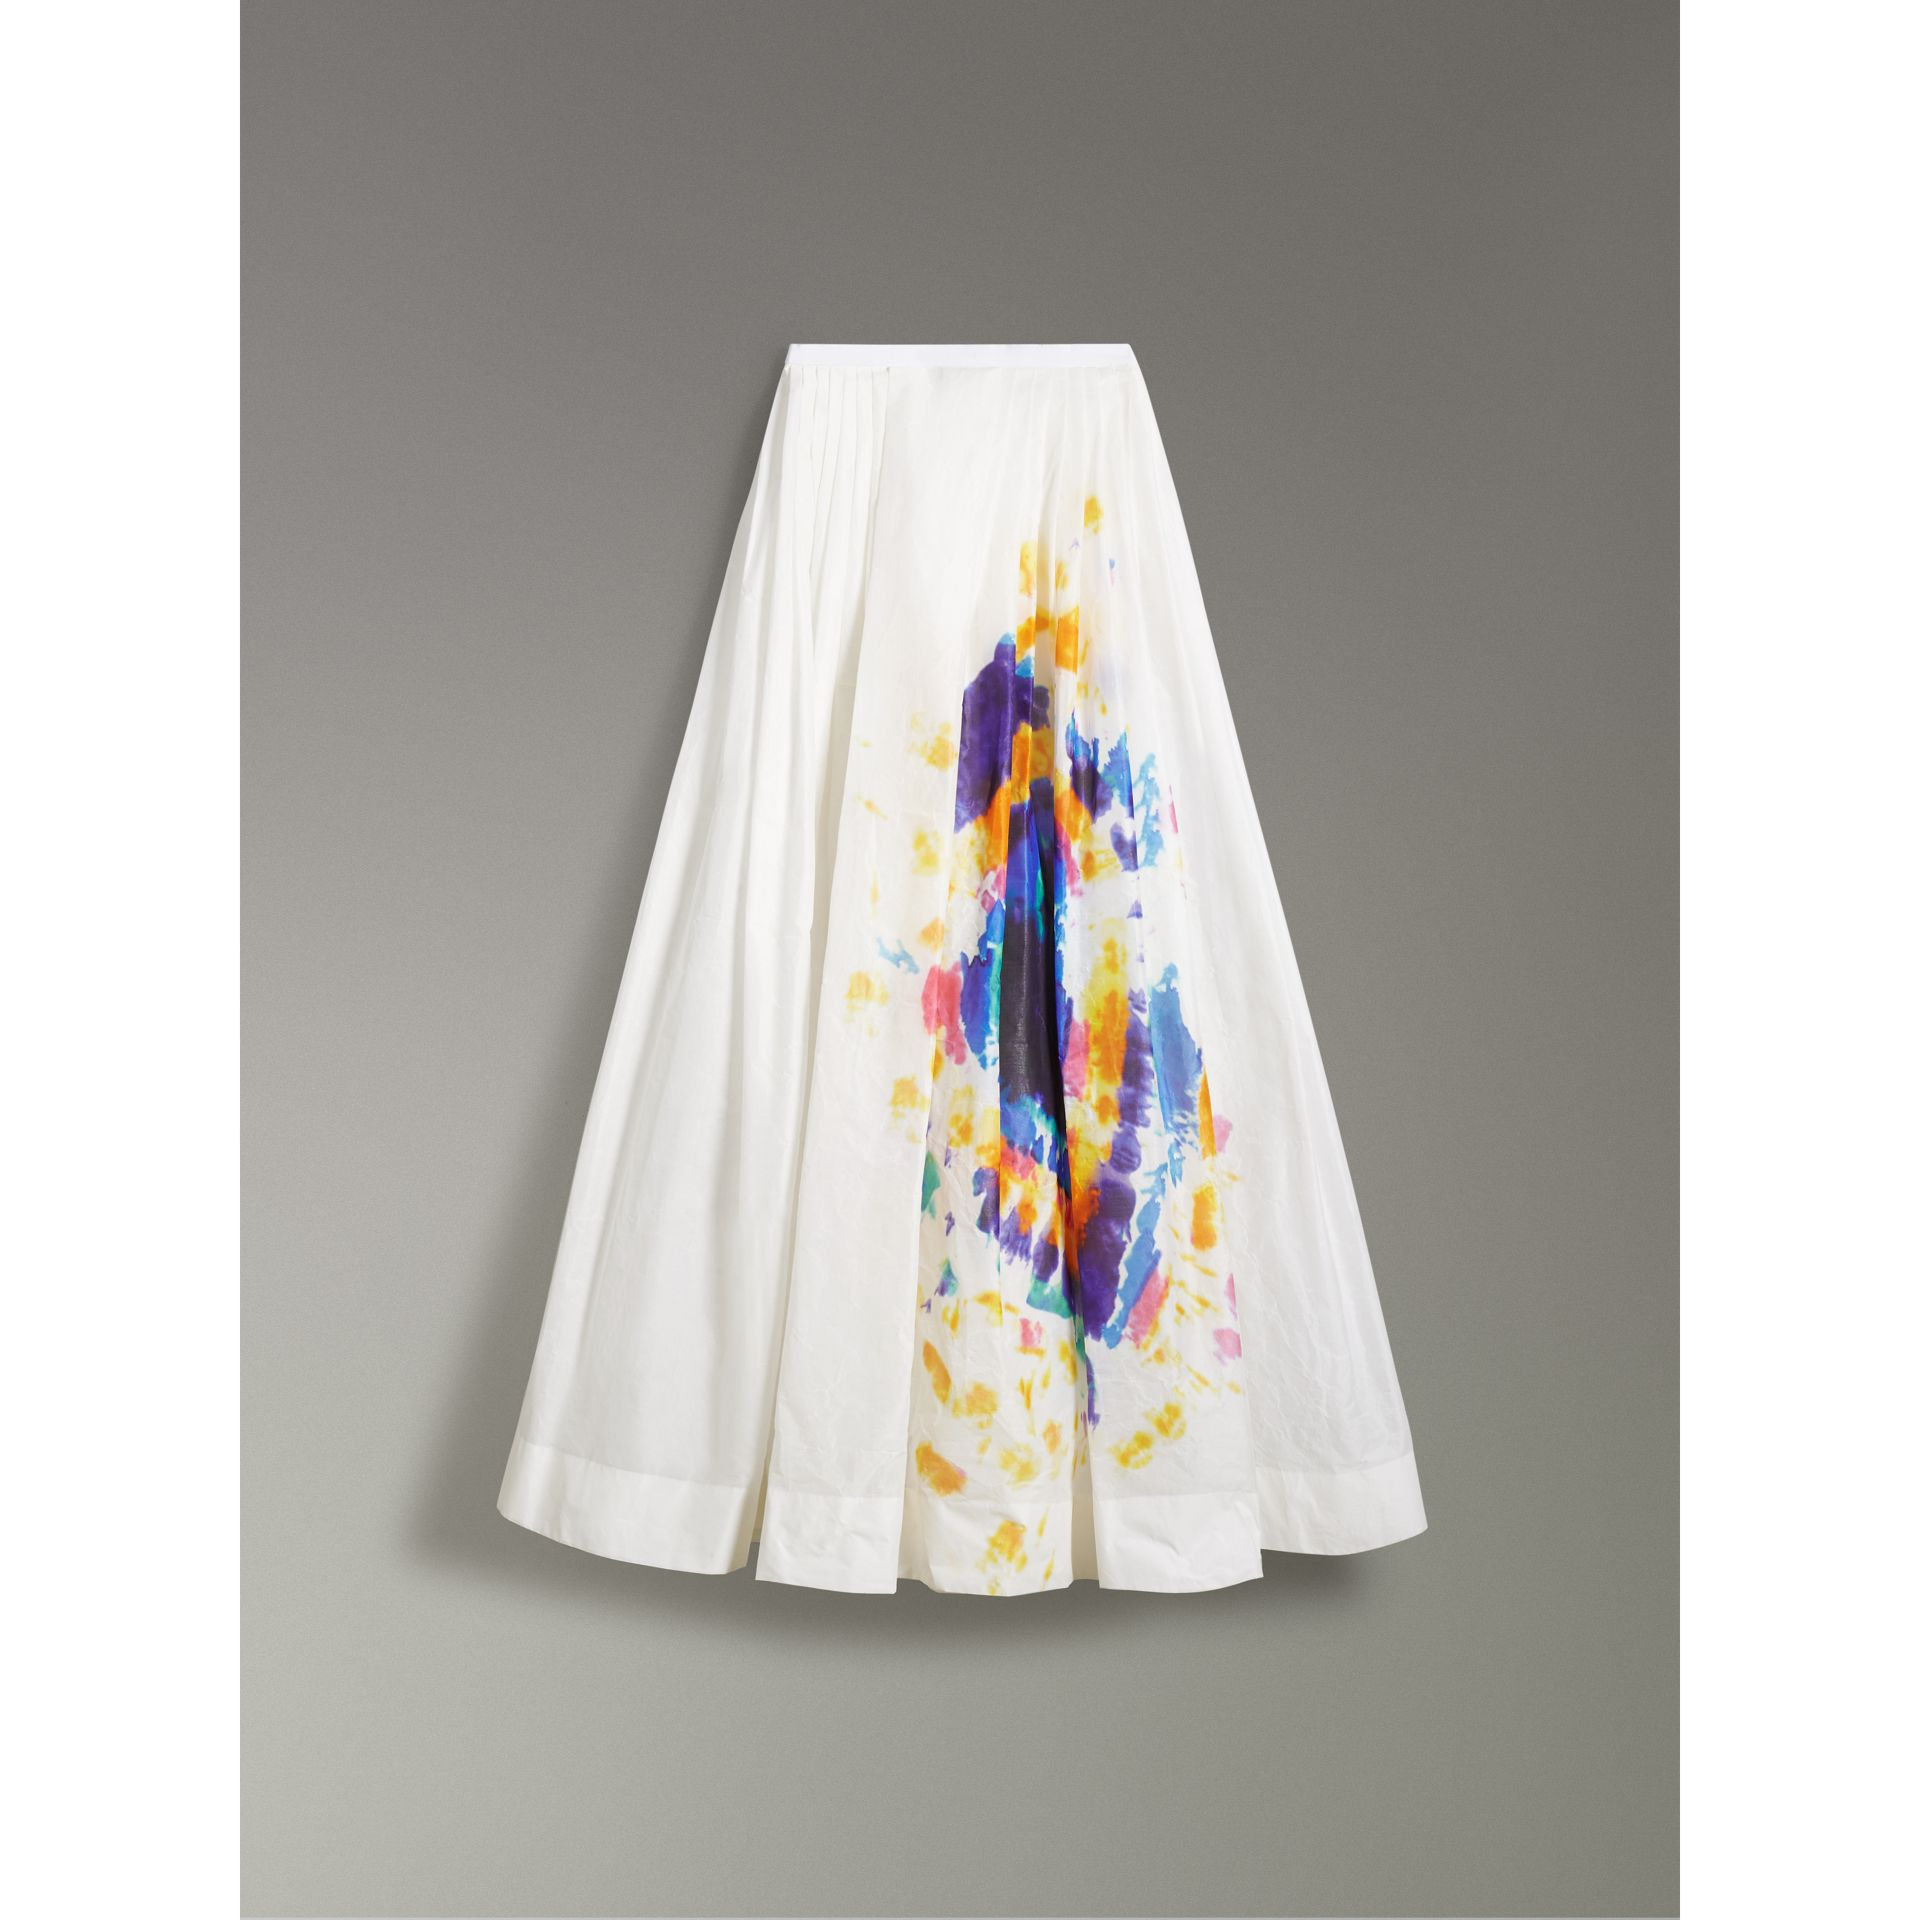 Tie-dye Print Maxi Skirt in Multi-bright Blue - Women | Burberry United States - gallery image 3